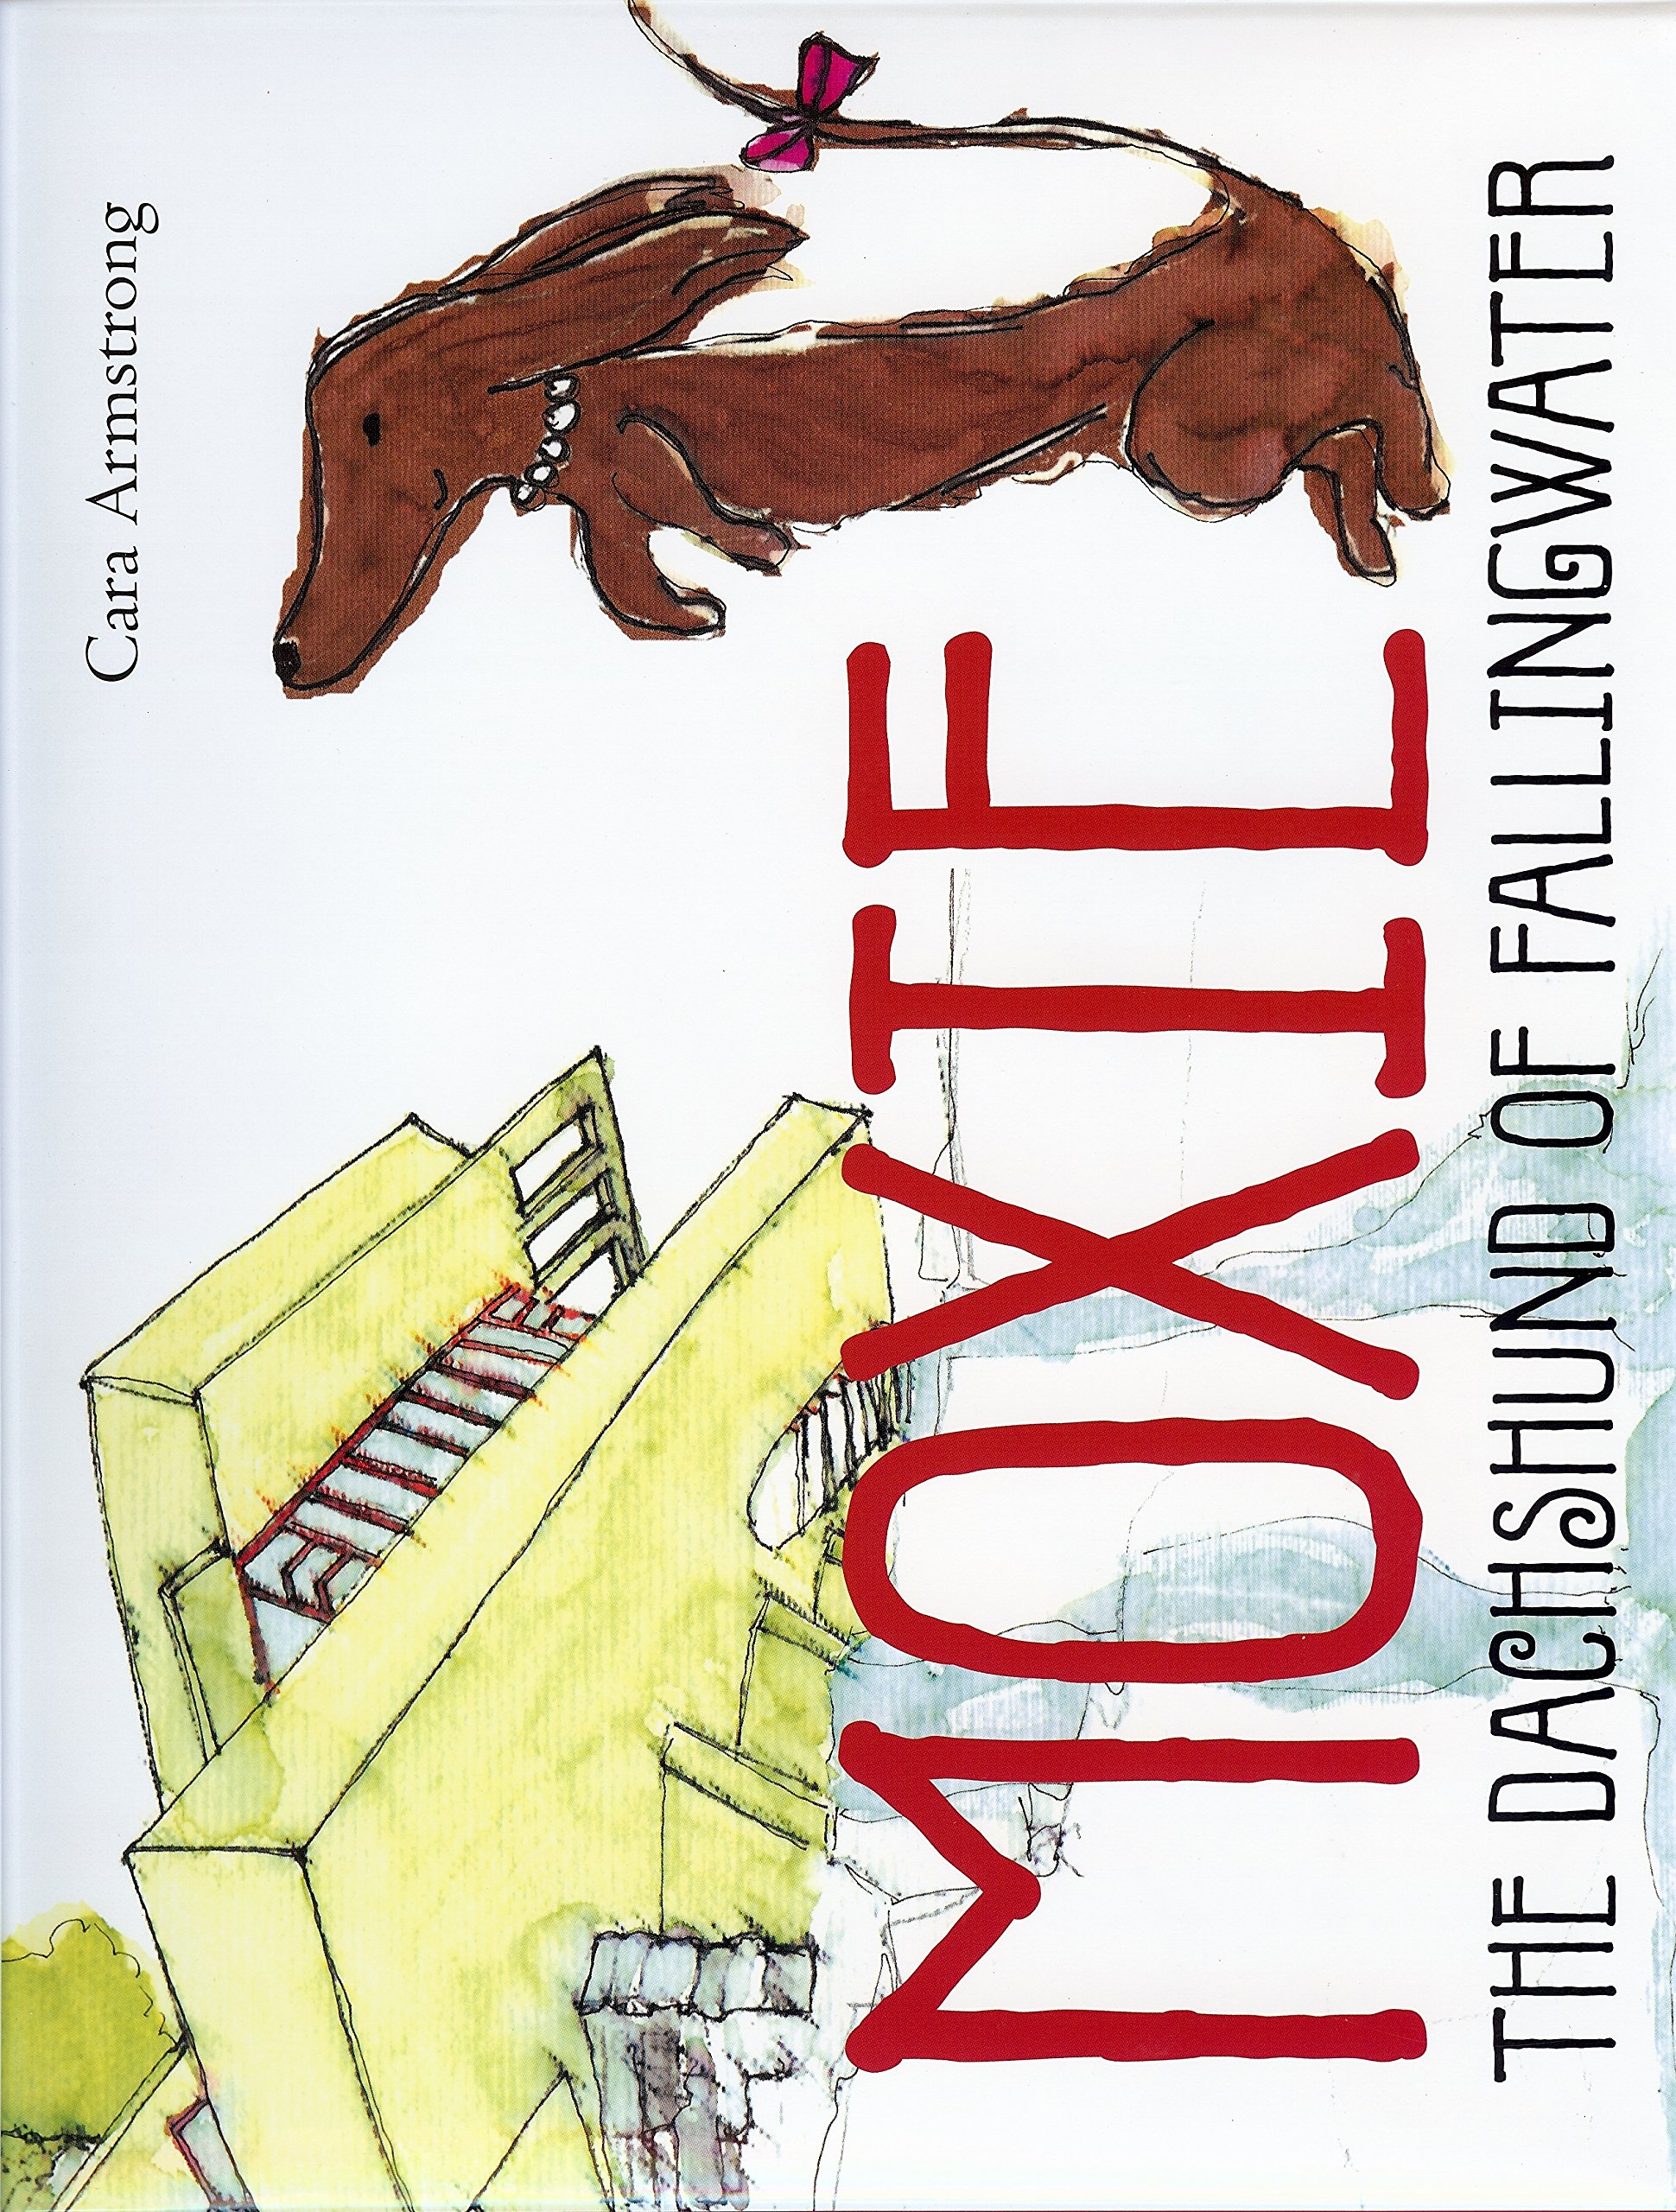 Amazon.com: Moxie: The Dachshund of Fallingwater (9781933979700 ...